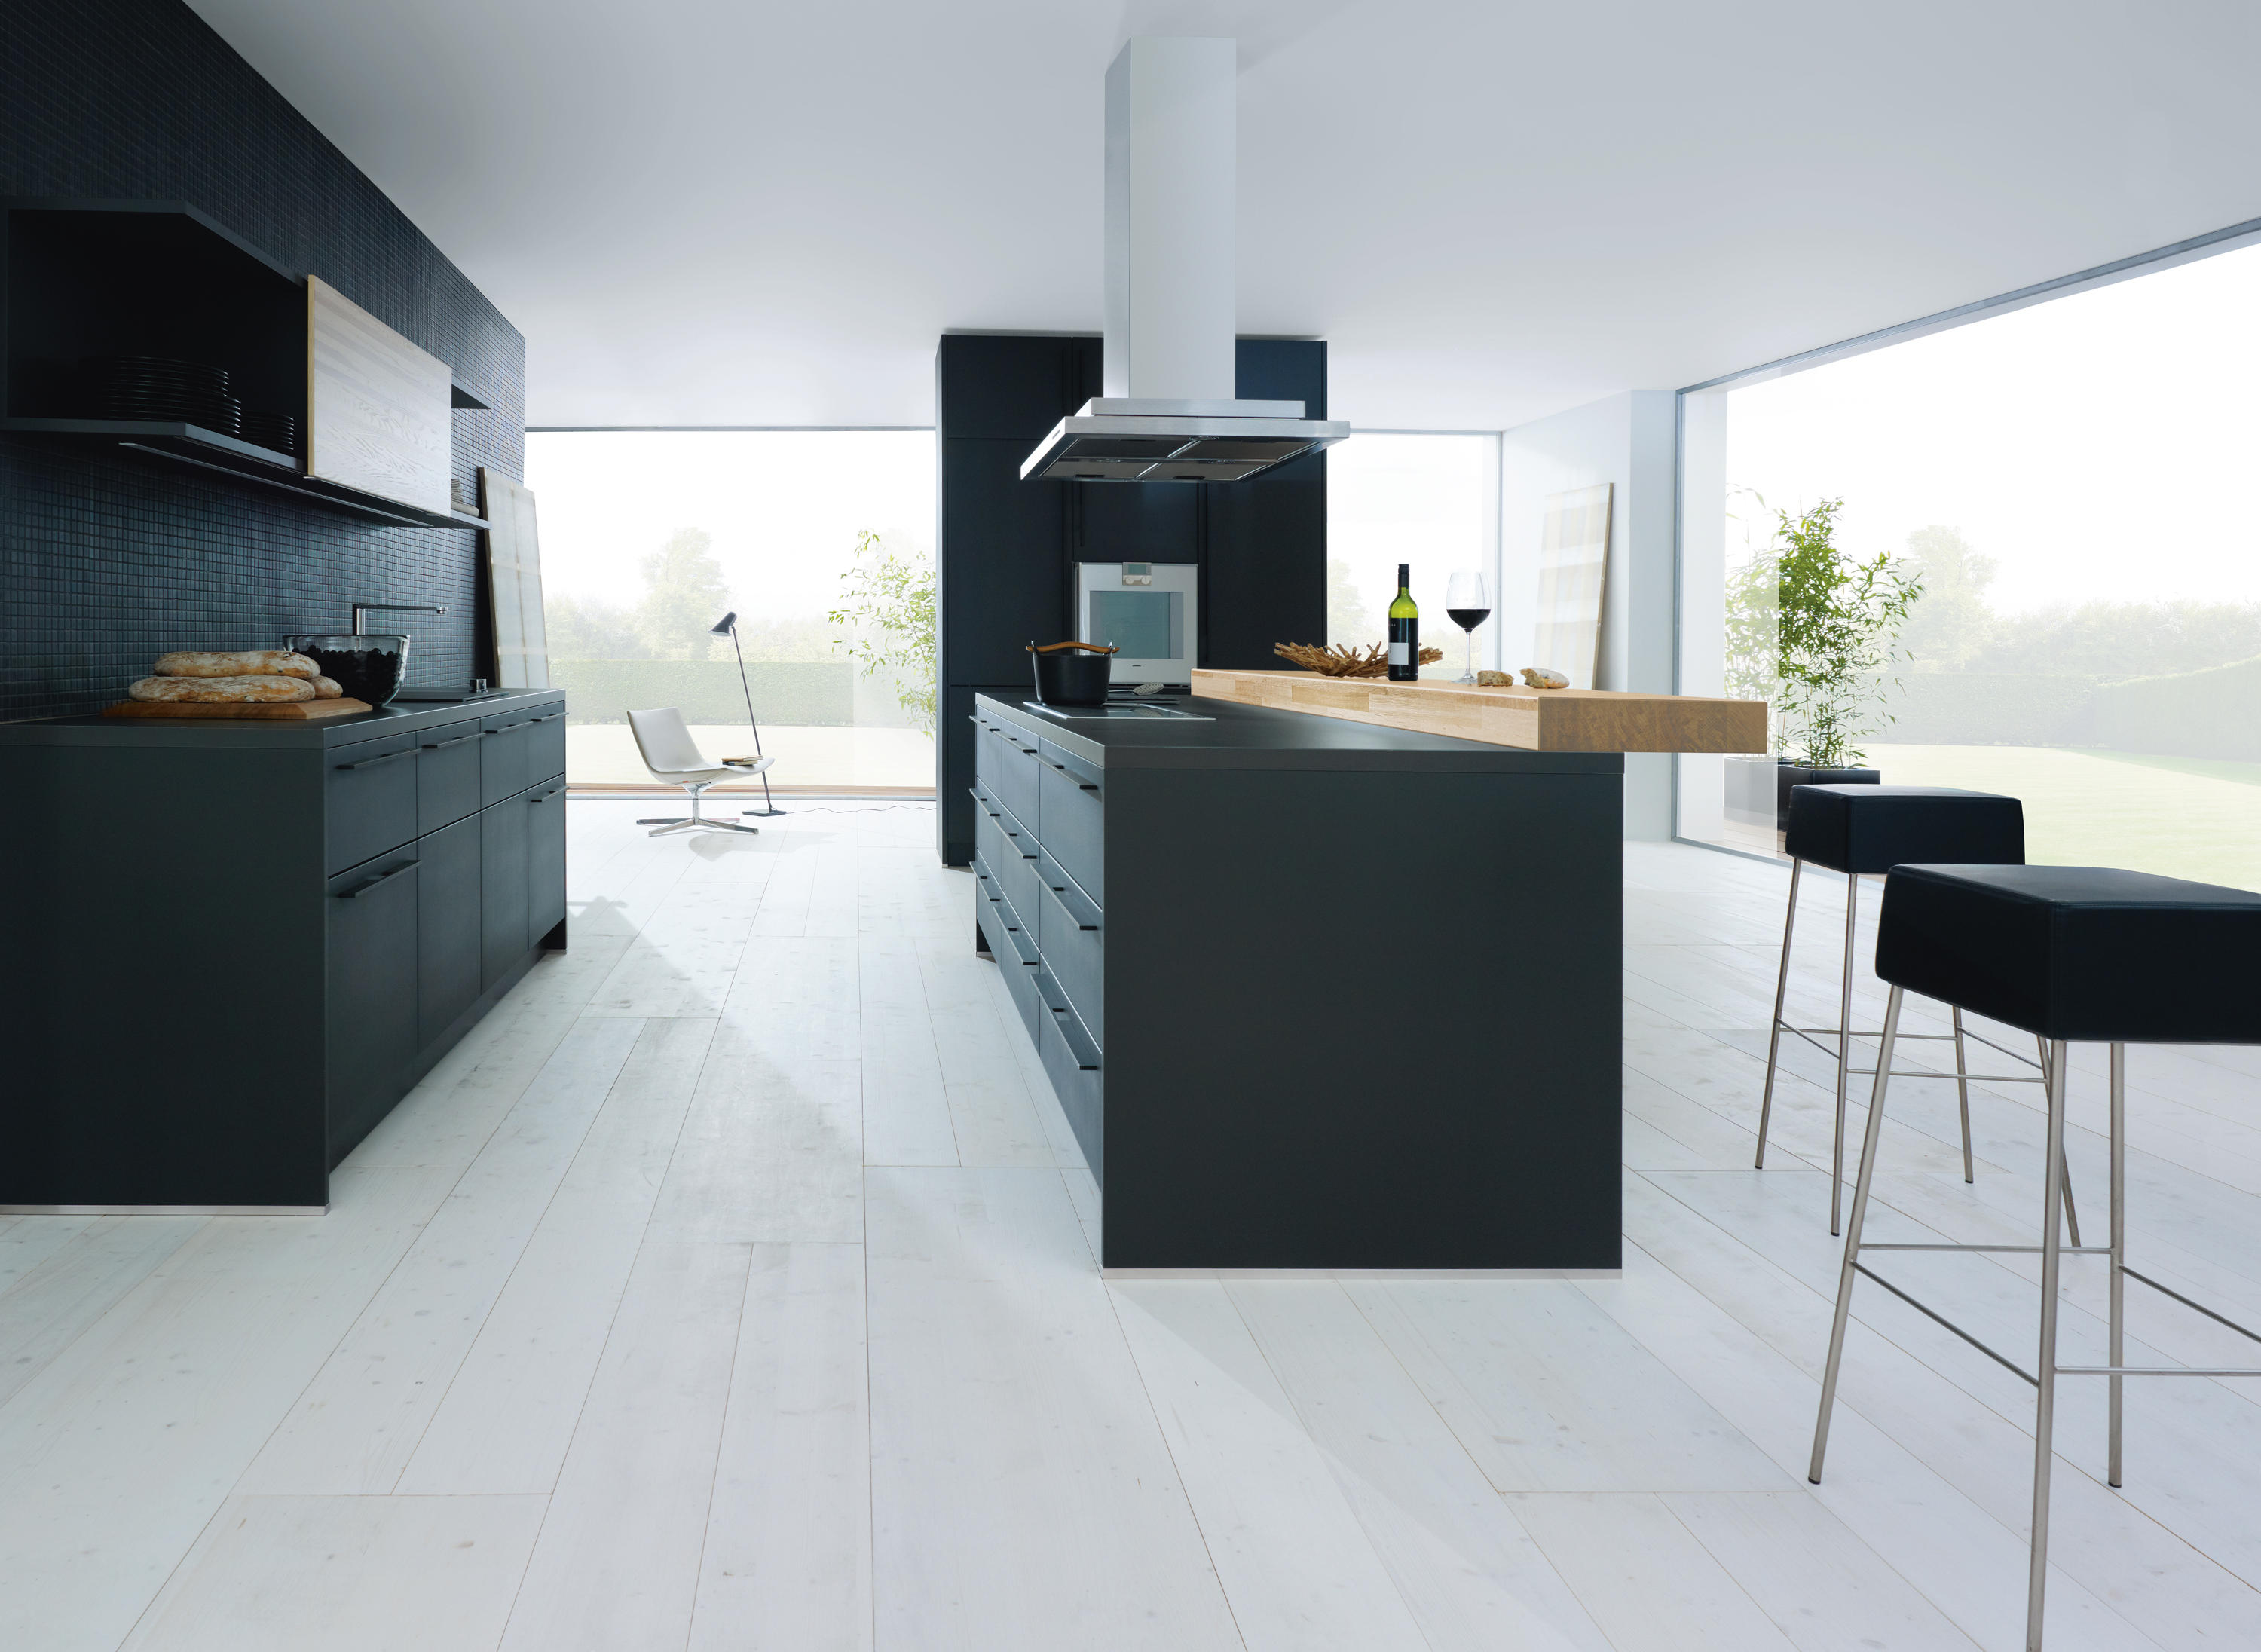 Next125 next125 bar - island kitchens from next125 | architonic